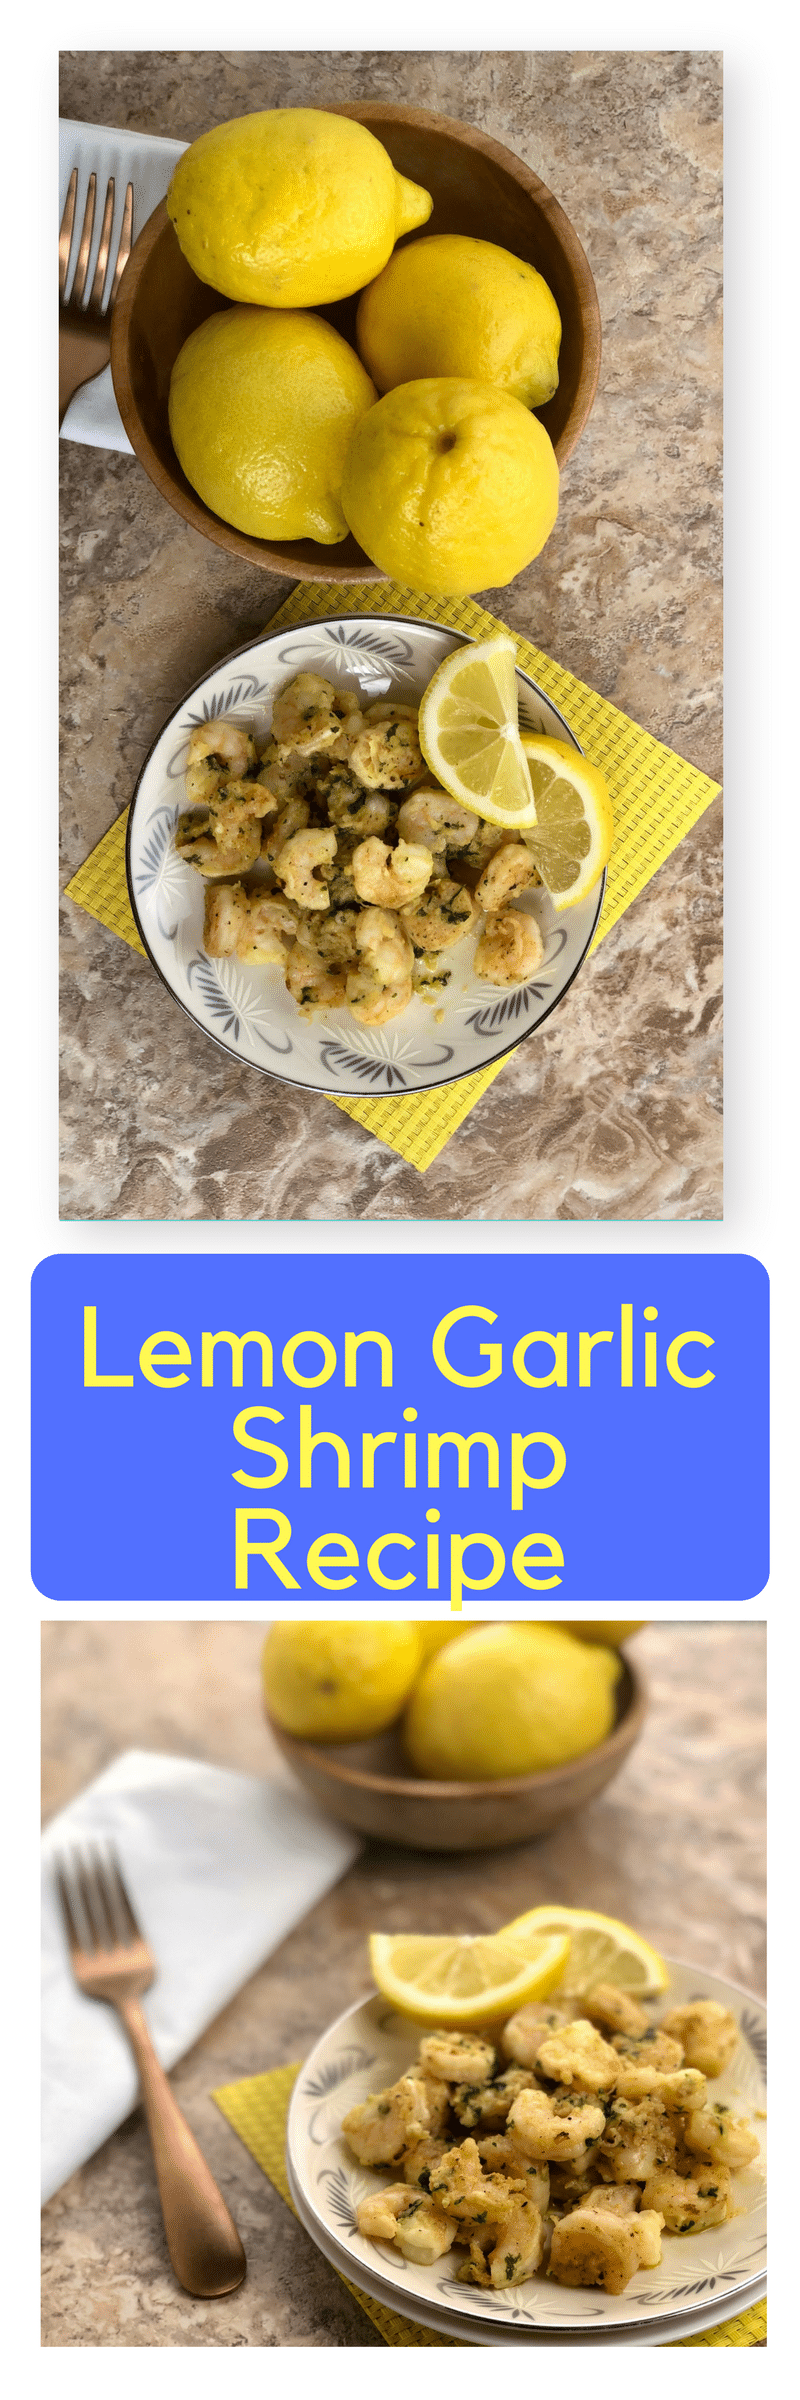 Lemon Garlic Shrimp has become a family favorite overnight. This dish is so quick and easy to make but packed full of flavor. It is a gourmet meal that you can make in under 10 minutes of prep and cook time. The minced garlic paired with the lemon and parsley, really make this shrimp taste outstanding. You can serve over a bed of rice, pasta, couscous, quinoa, or alone with a side of crusty bread for a delectable dinner any day of the week. However you decide to serve it up, I am sure it will be a hit!